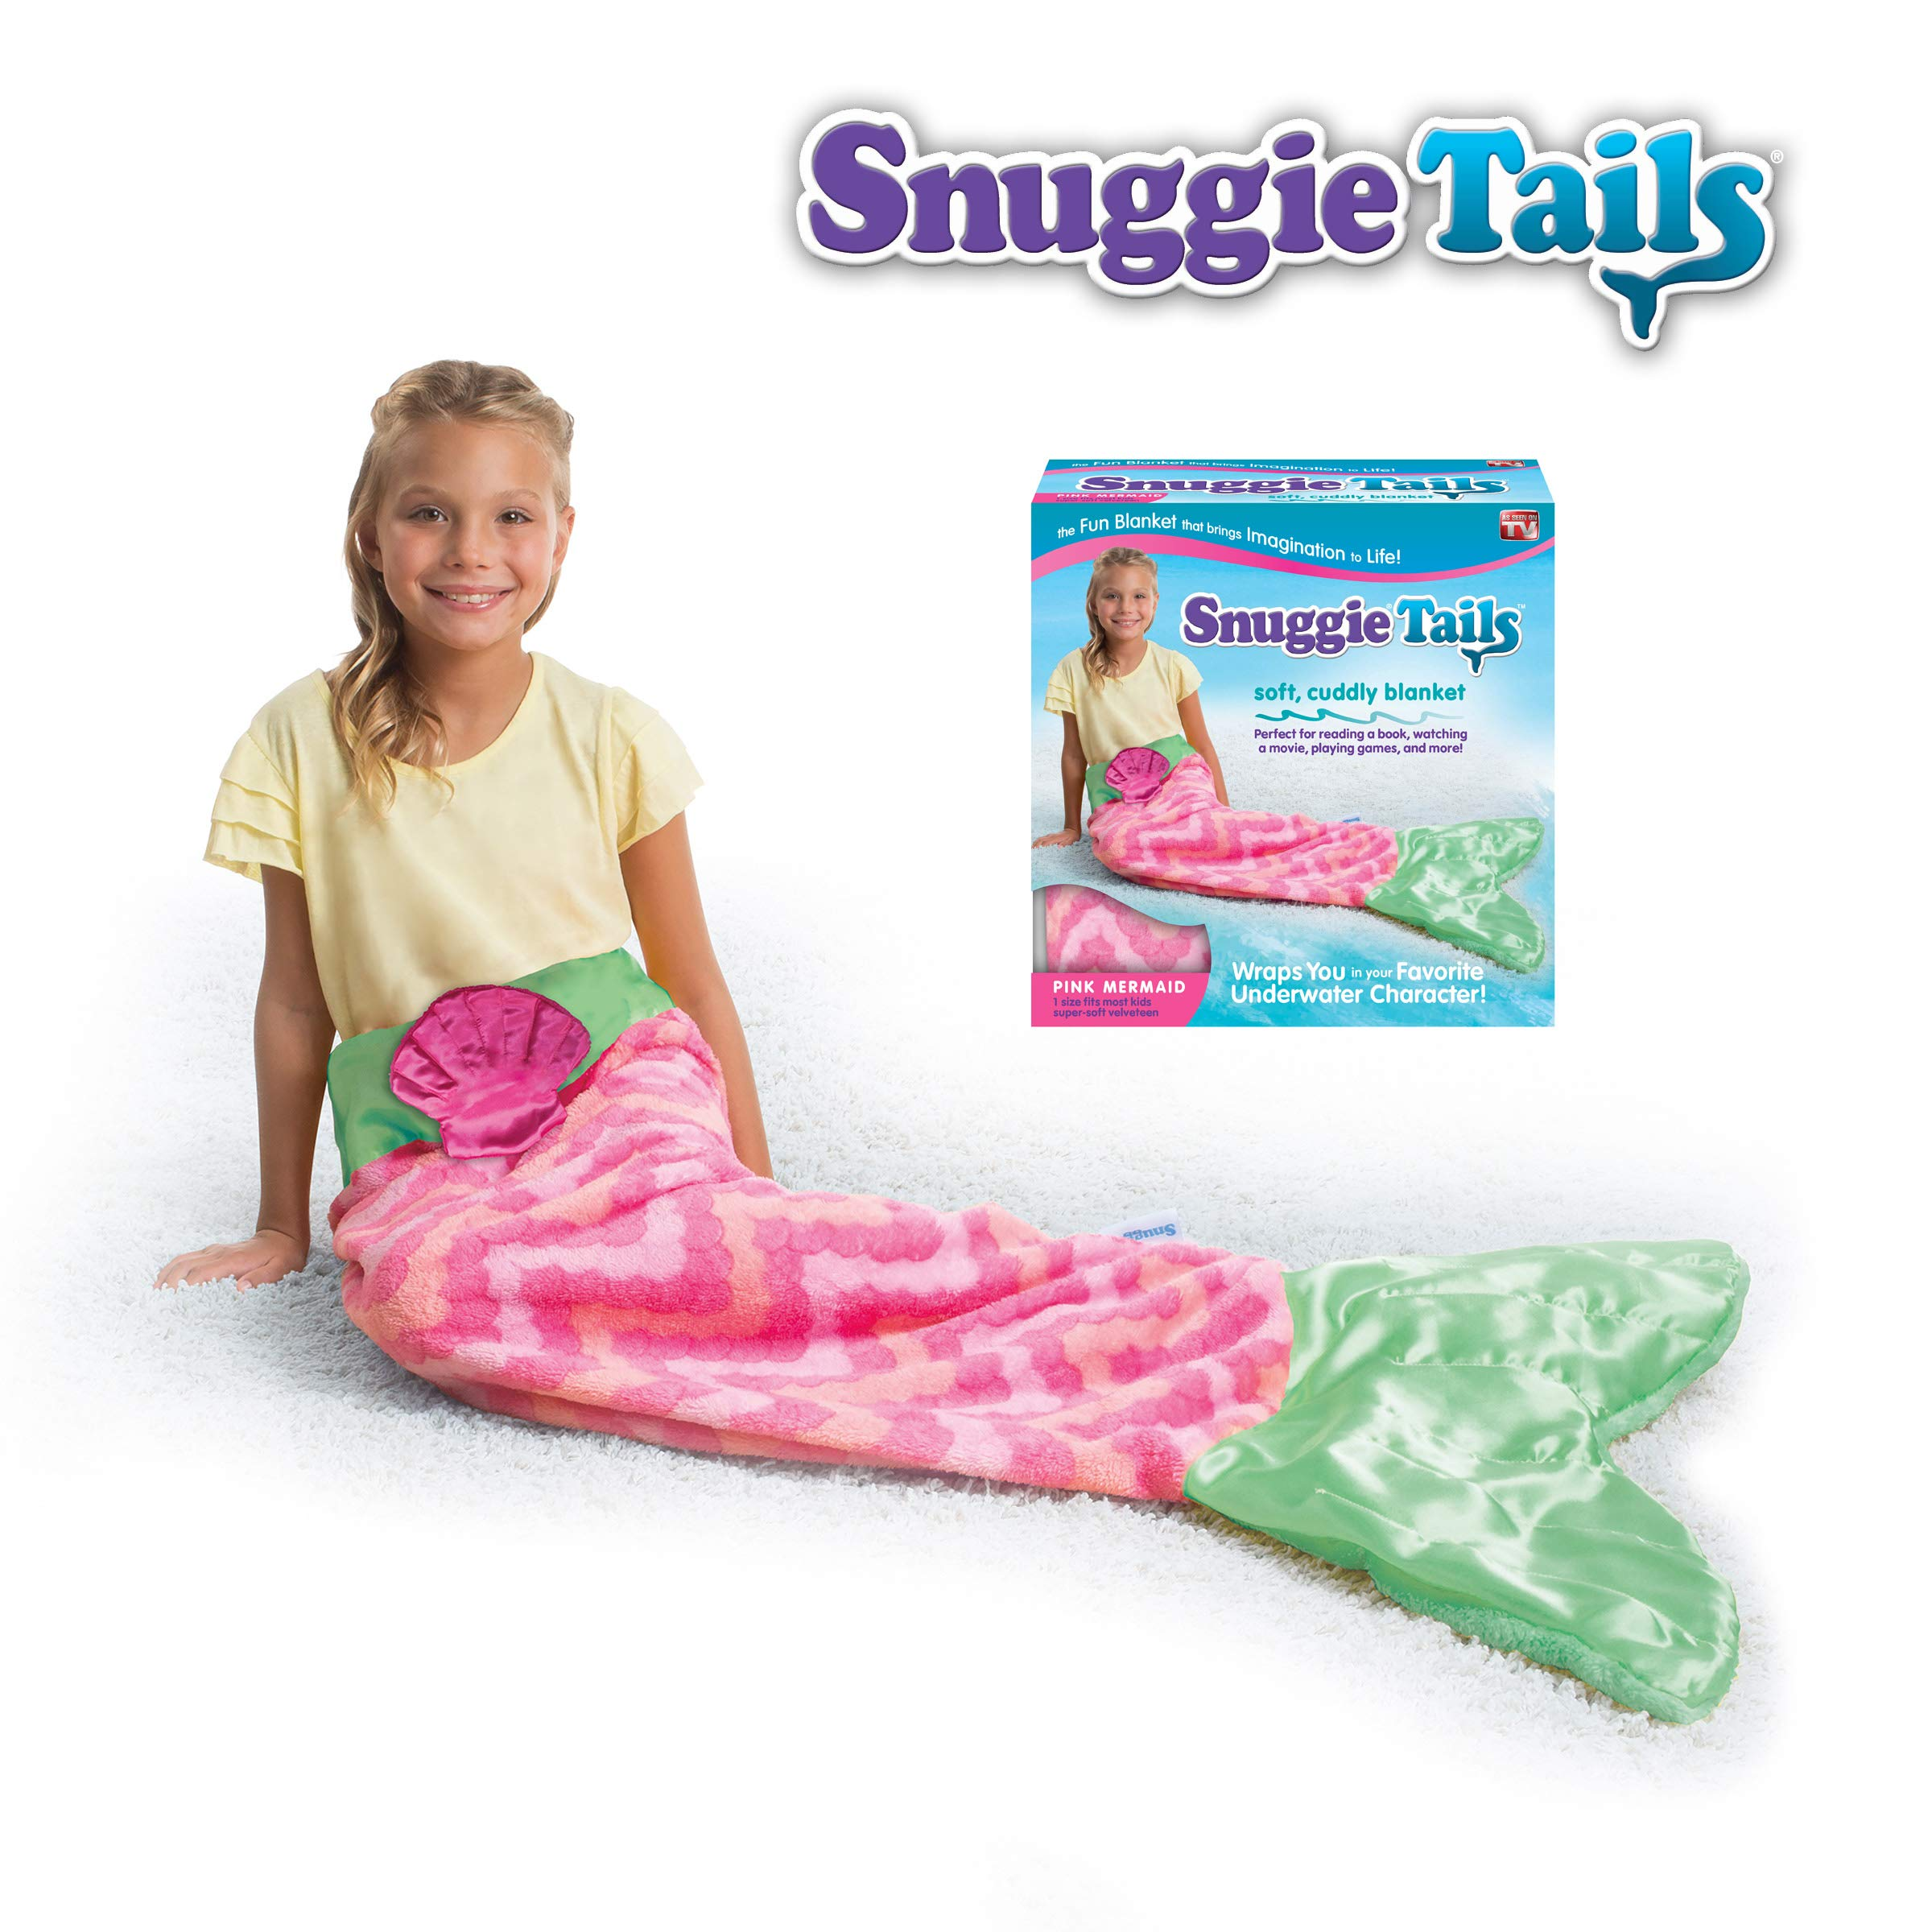 Snuggie Tails Allstar Innovations Mermaid Blanket for Kids (Pink), As Seen on TV